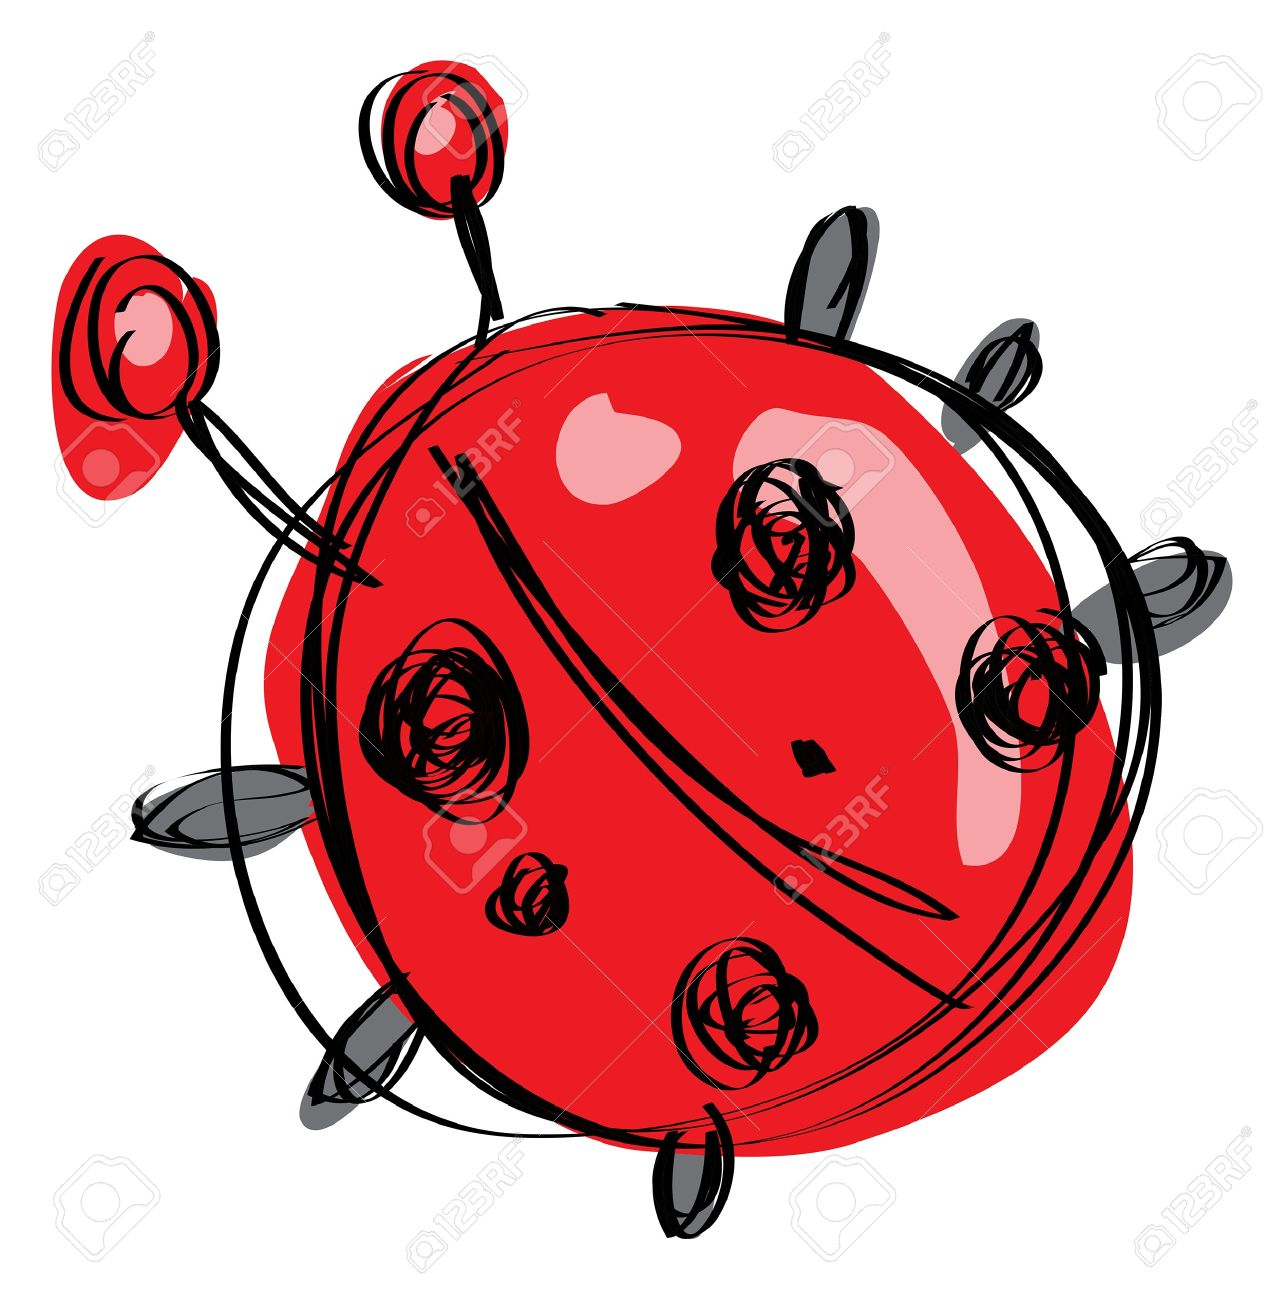 1284x1300 Cartoon Red Baby Ladybug With Black Dots In A Naif Childish